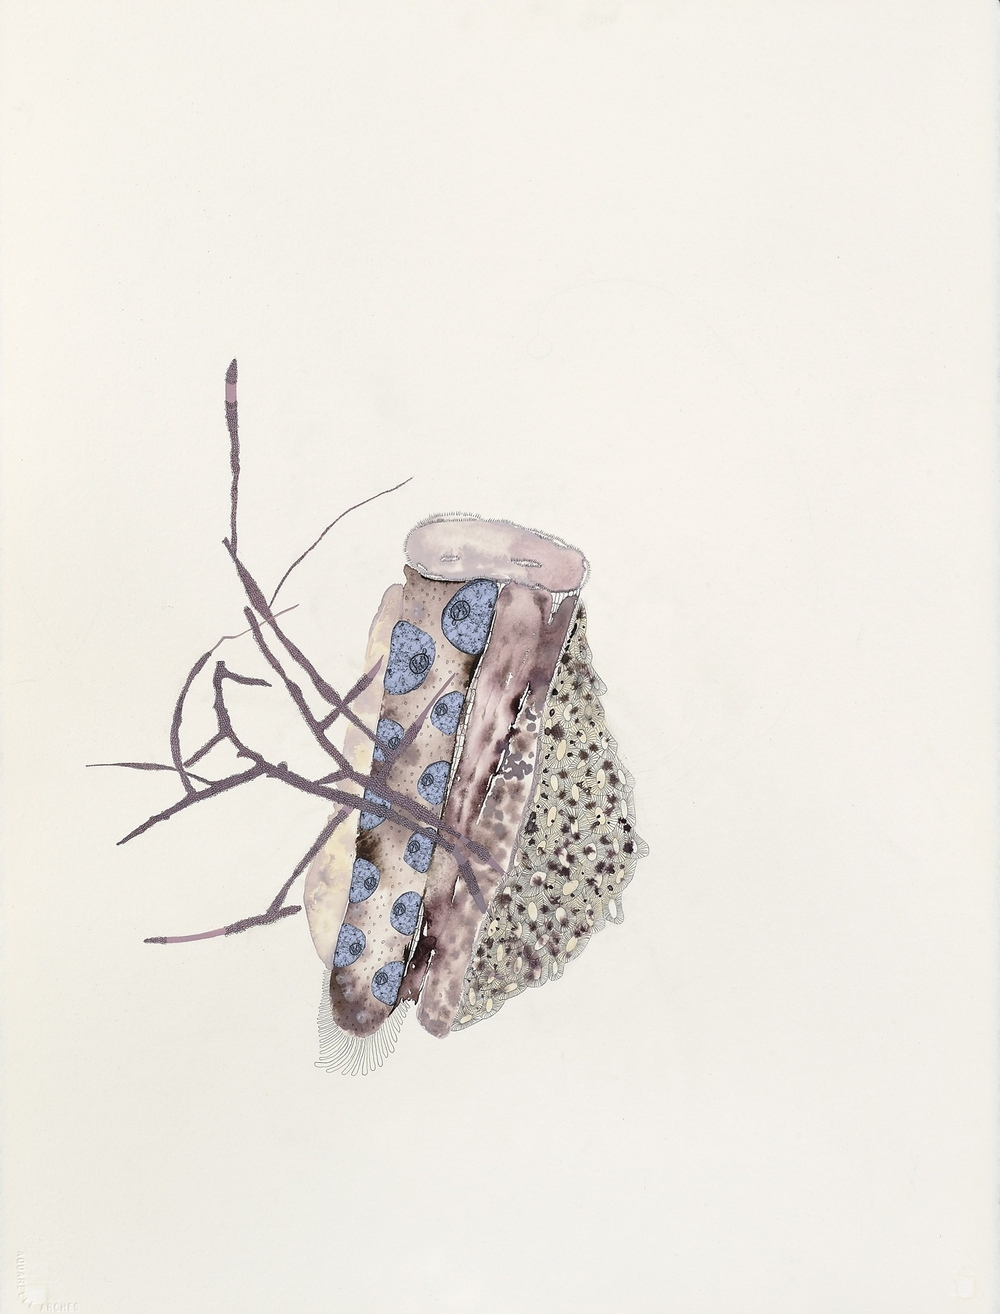 "Feral Seed,  gouache, graphite, collage on paper, 30"" x 22"", 2010"